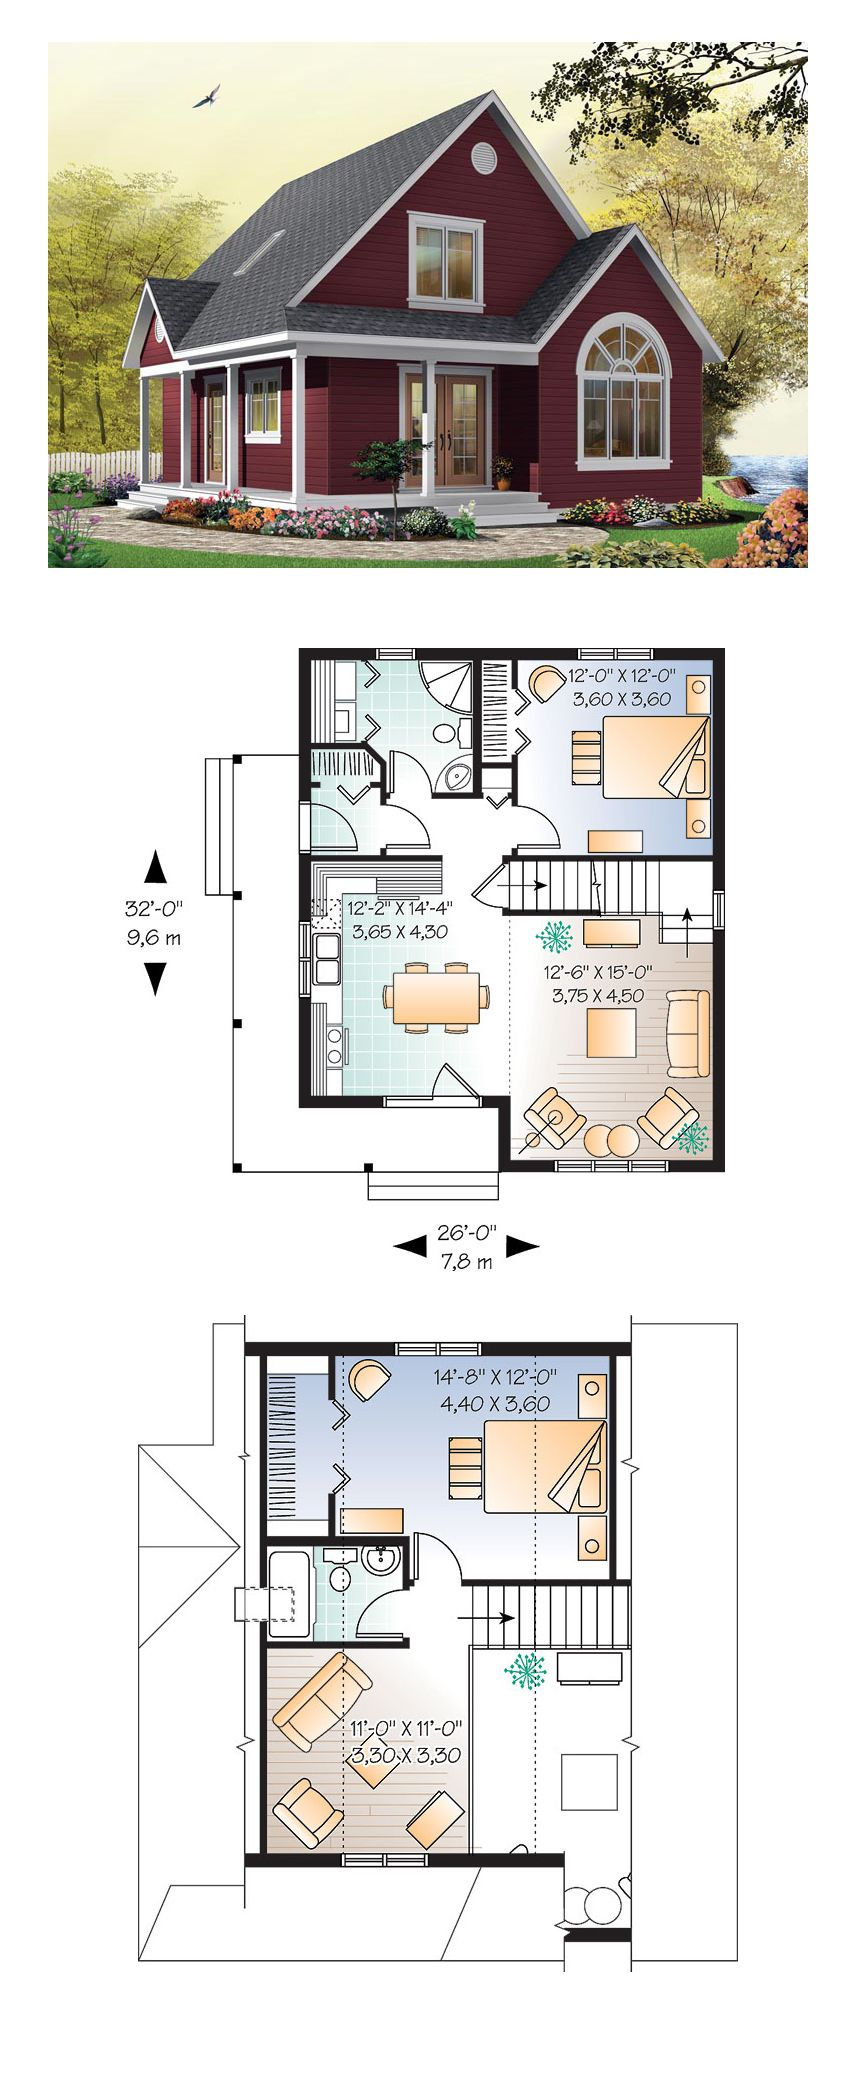 Cottage Style COOL House Plan ID chp28554  Total Living